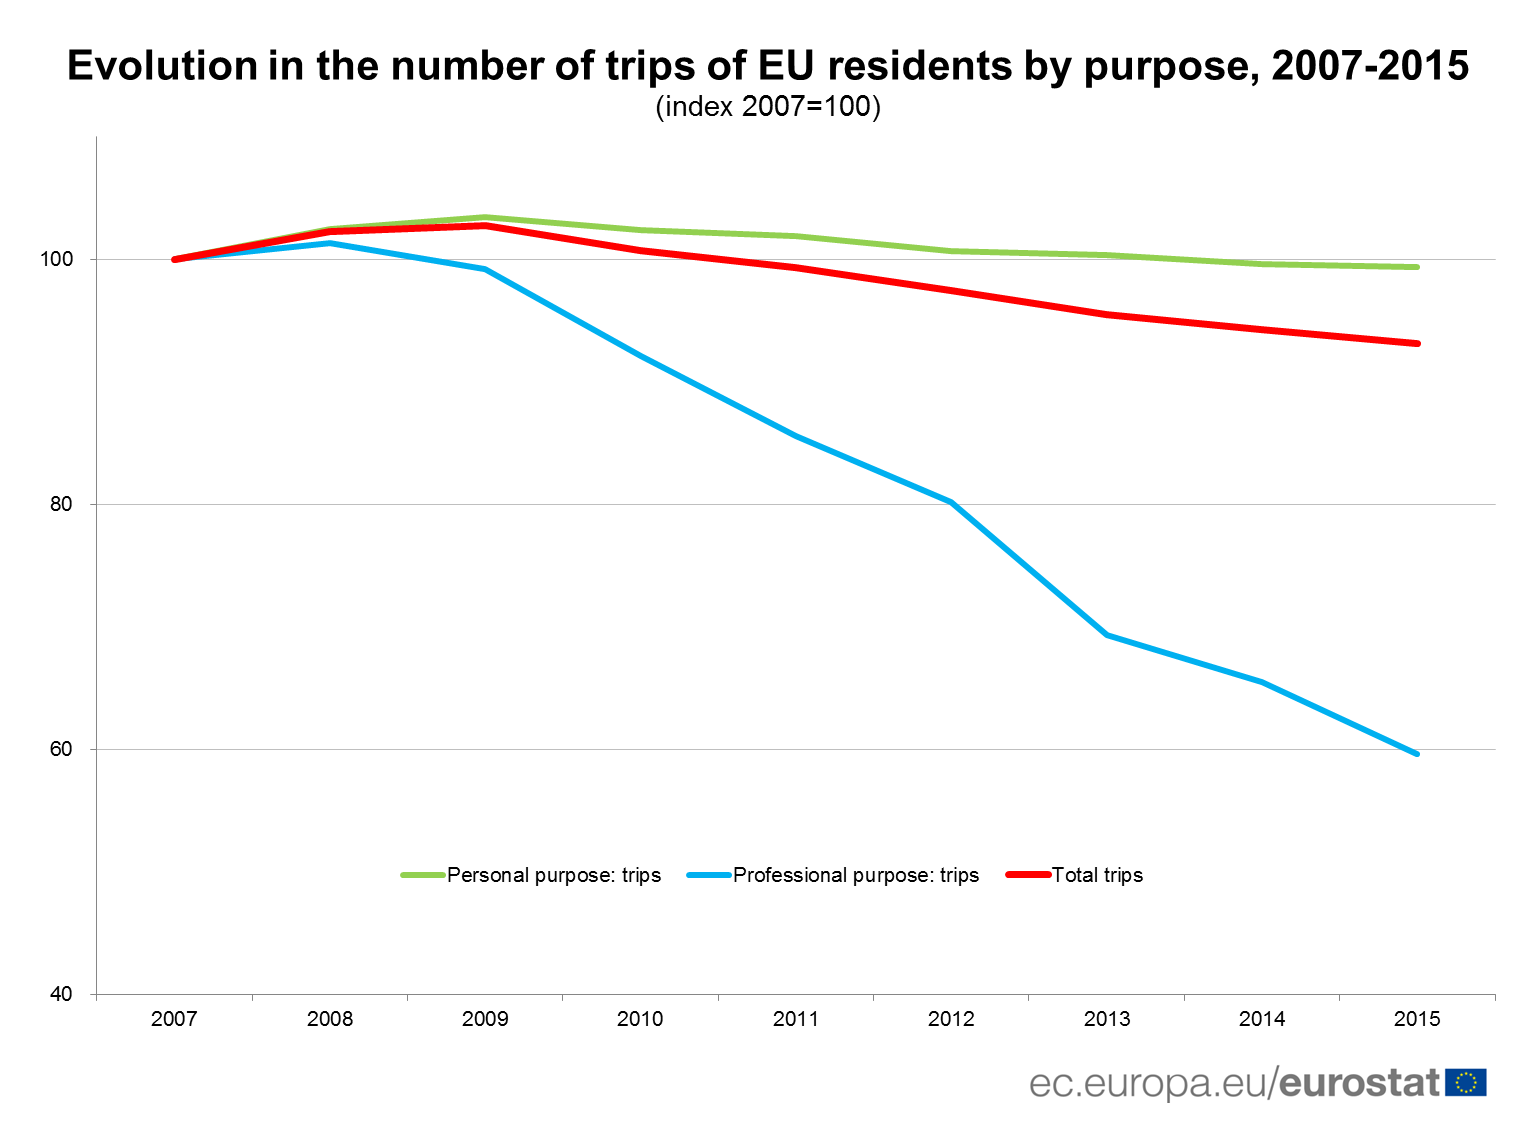 Evolution in the number of trips of EU residents by purpose, 2007-2015